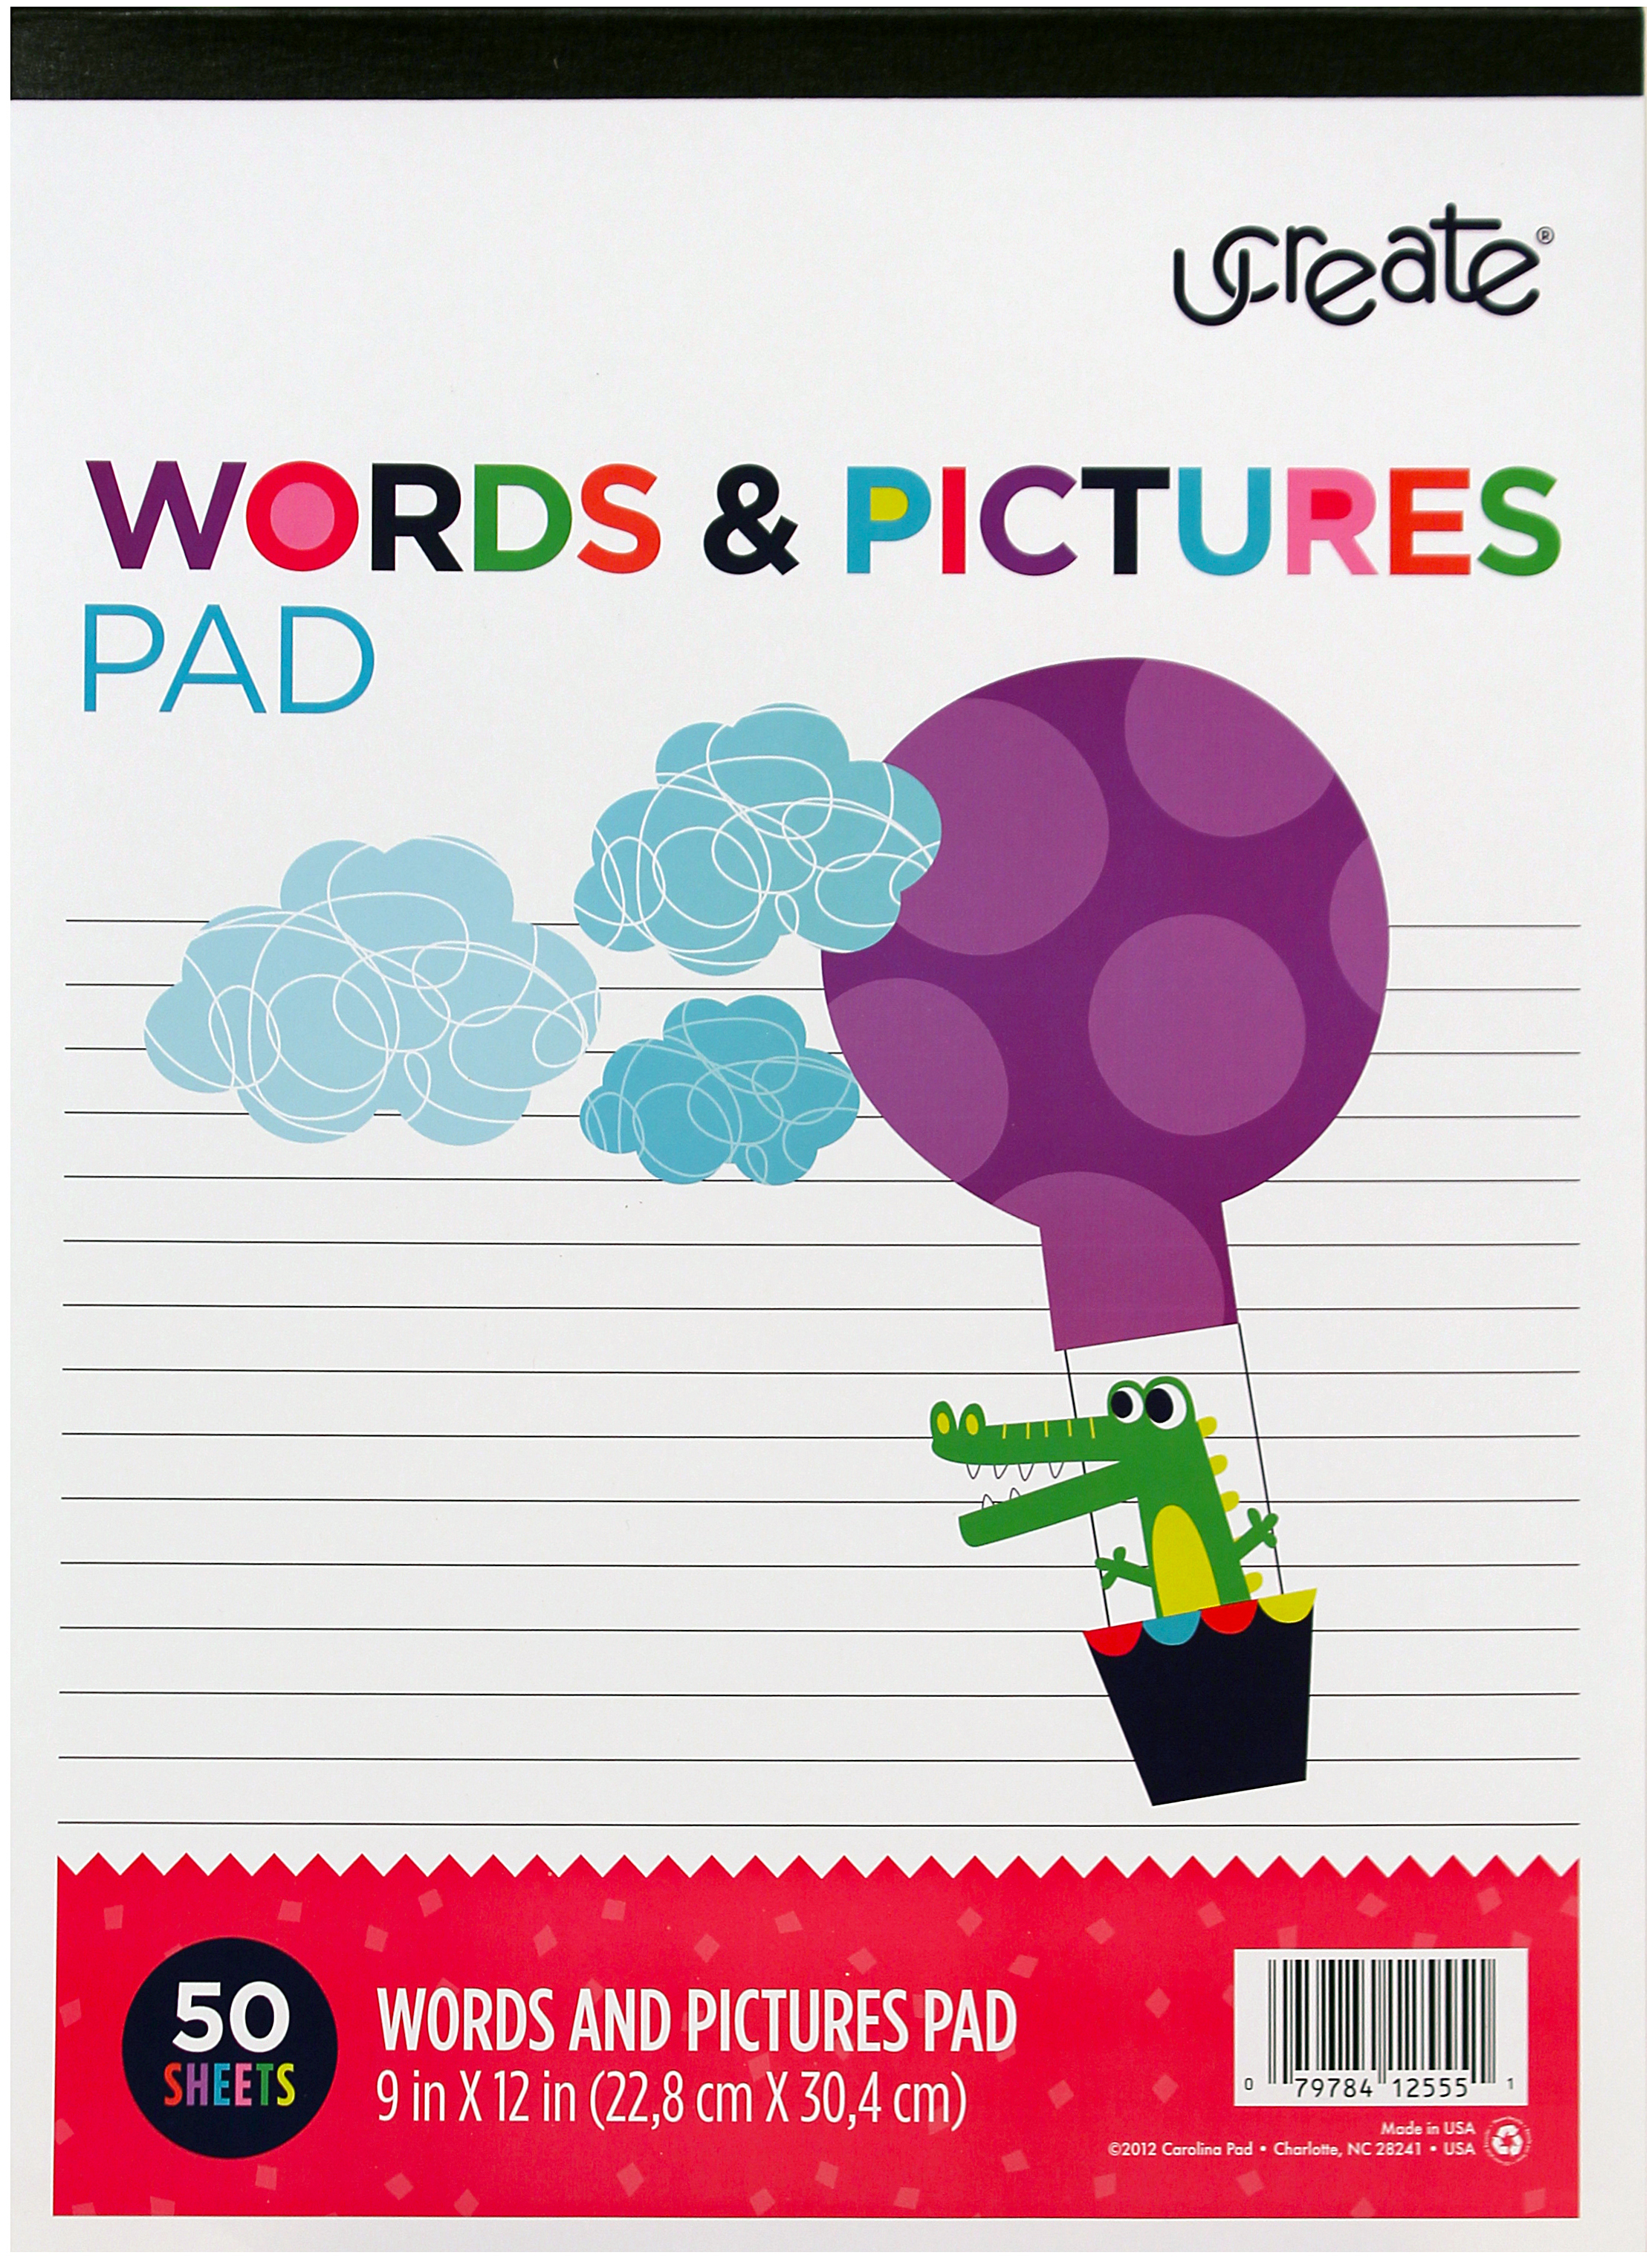 50 SHEETS -WORDS & PICTURE PAD